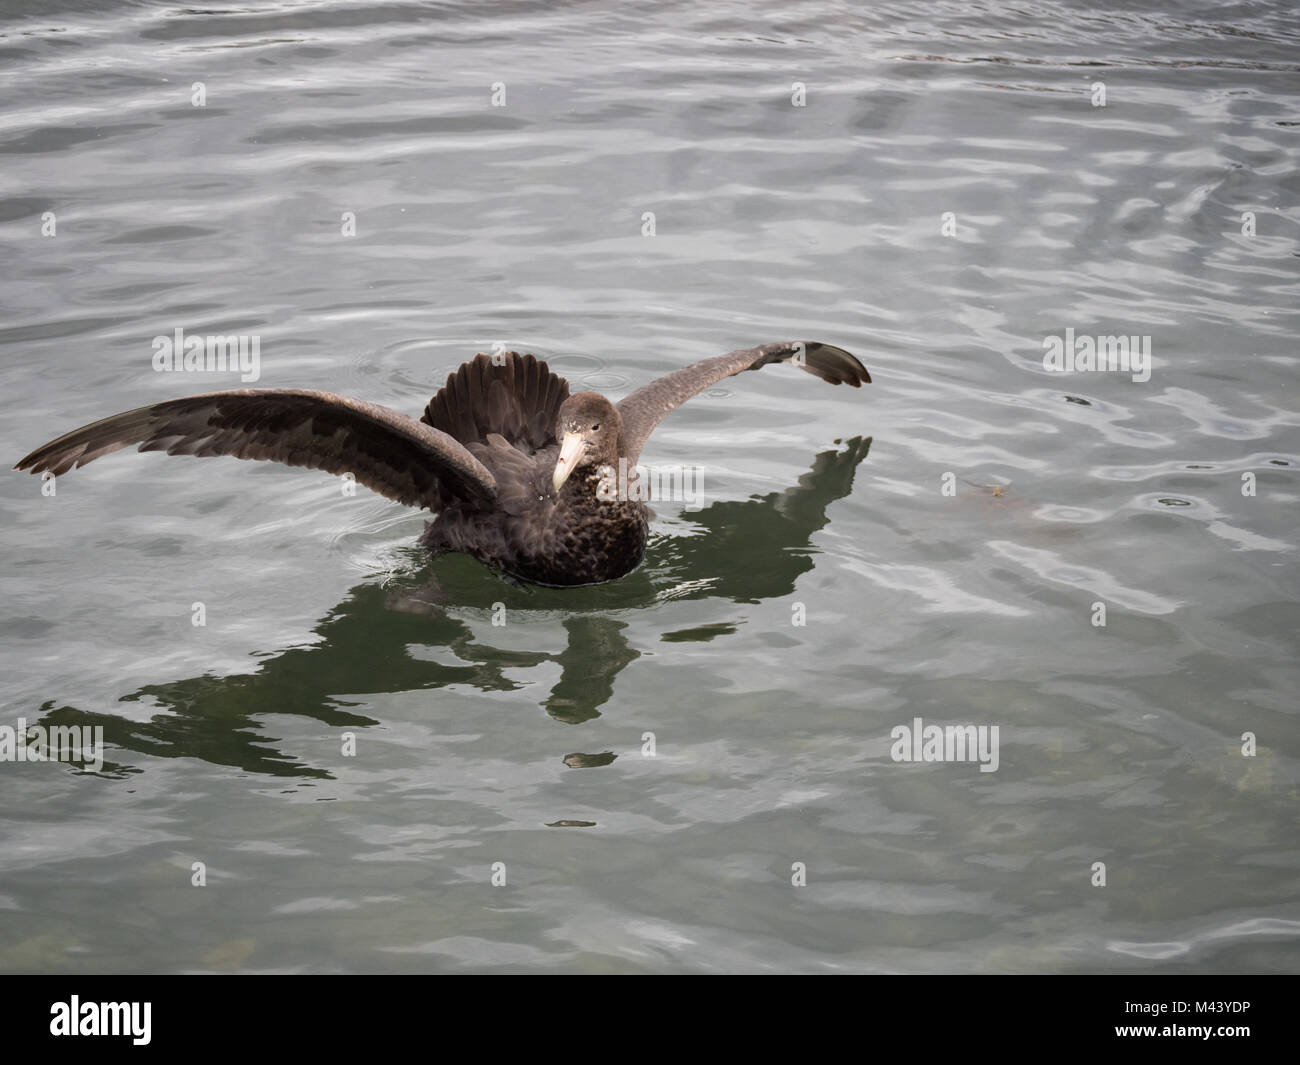 A Northern Giant Petrel bird floating on gray-green water with its wings extended. - Stock Image